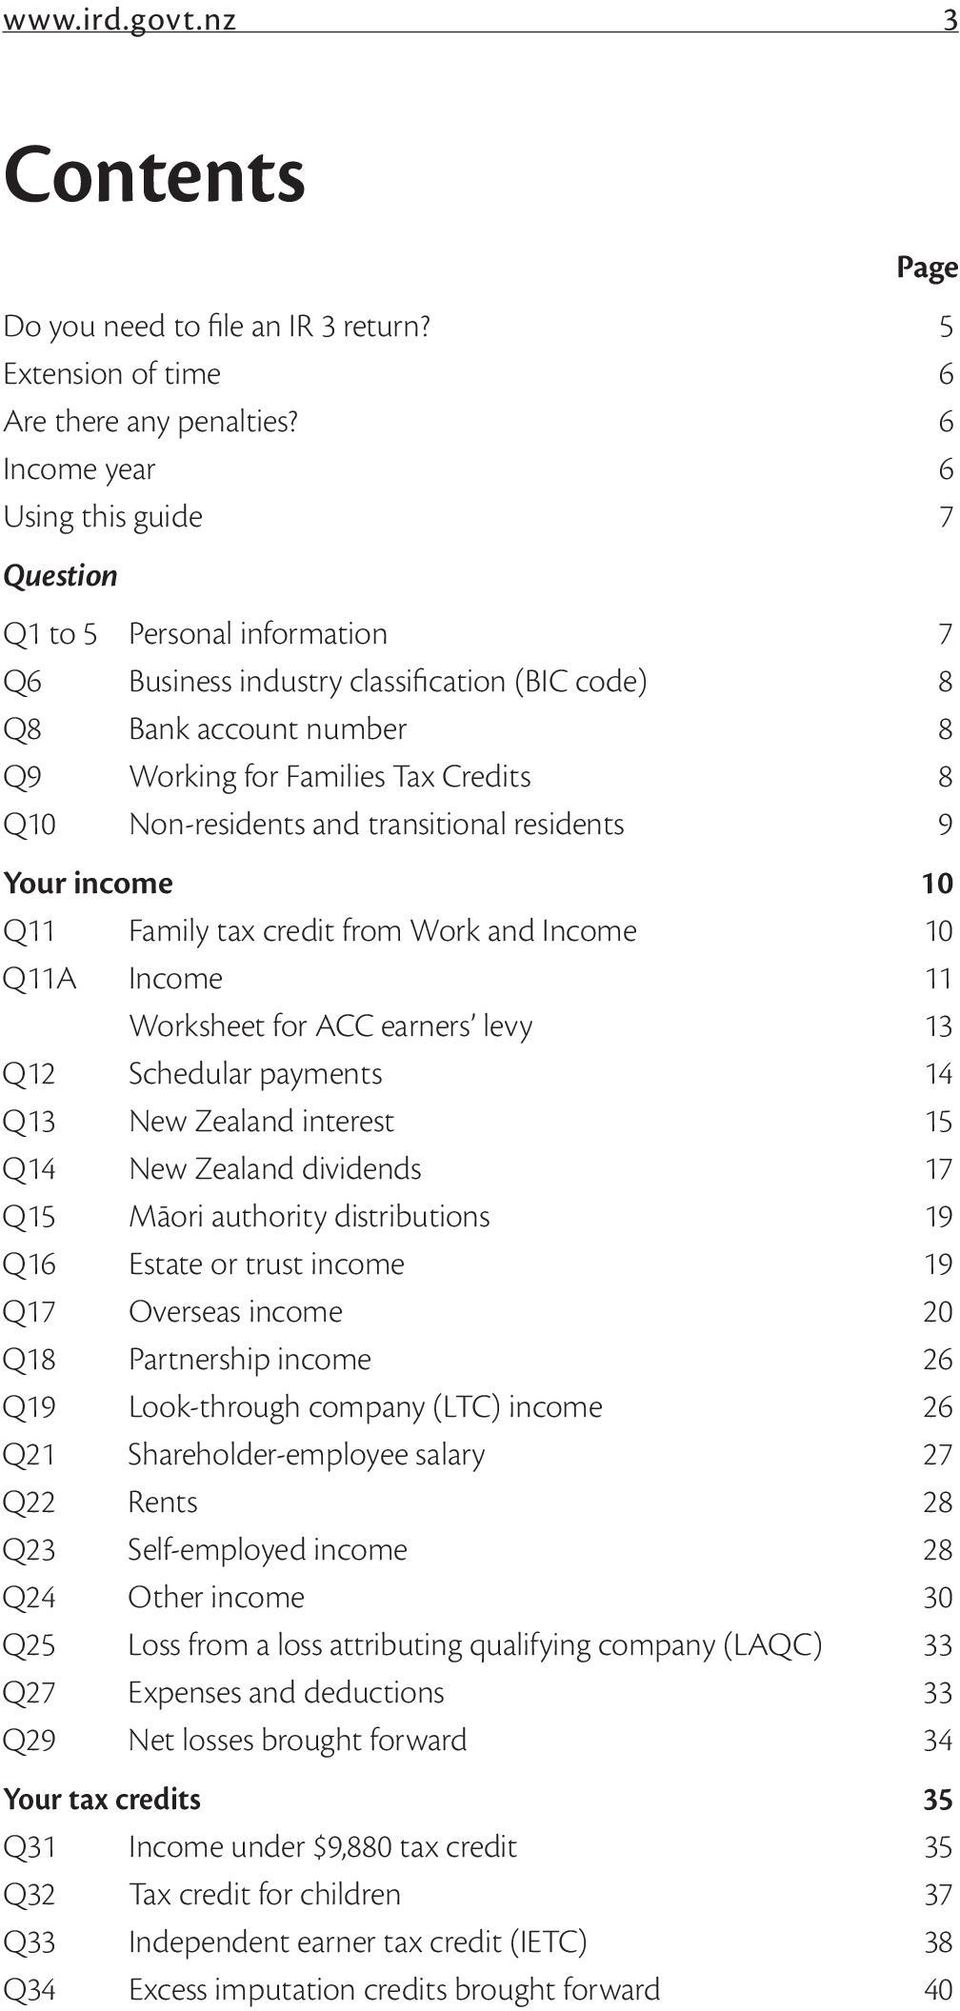 Non-residents and transitional residents 9 Your income 10 Q11 Family tax credit from Work and Income 10 Q11A Income 11 Worksheet for ACC earners levy 13 Q12 Schedular payments 14 Q13 New Zealand